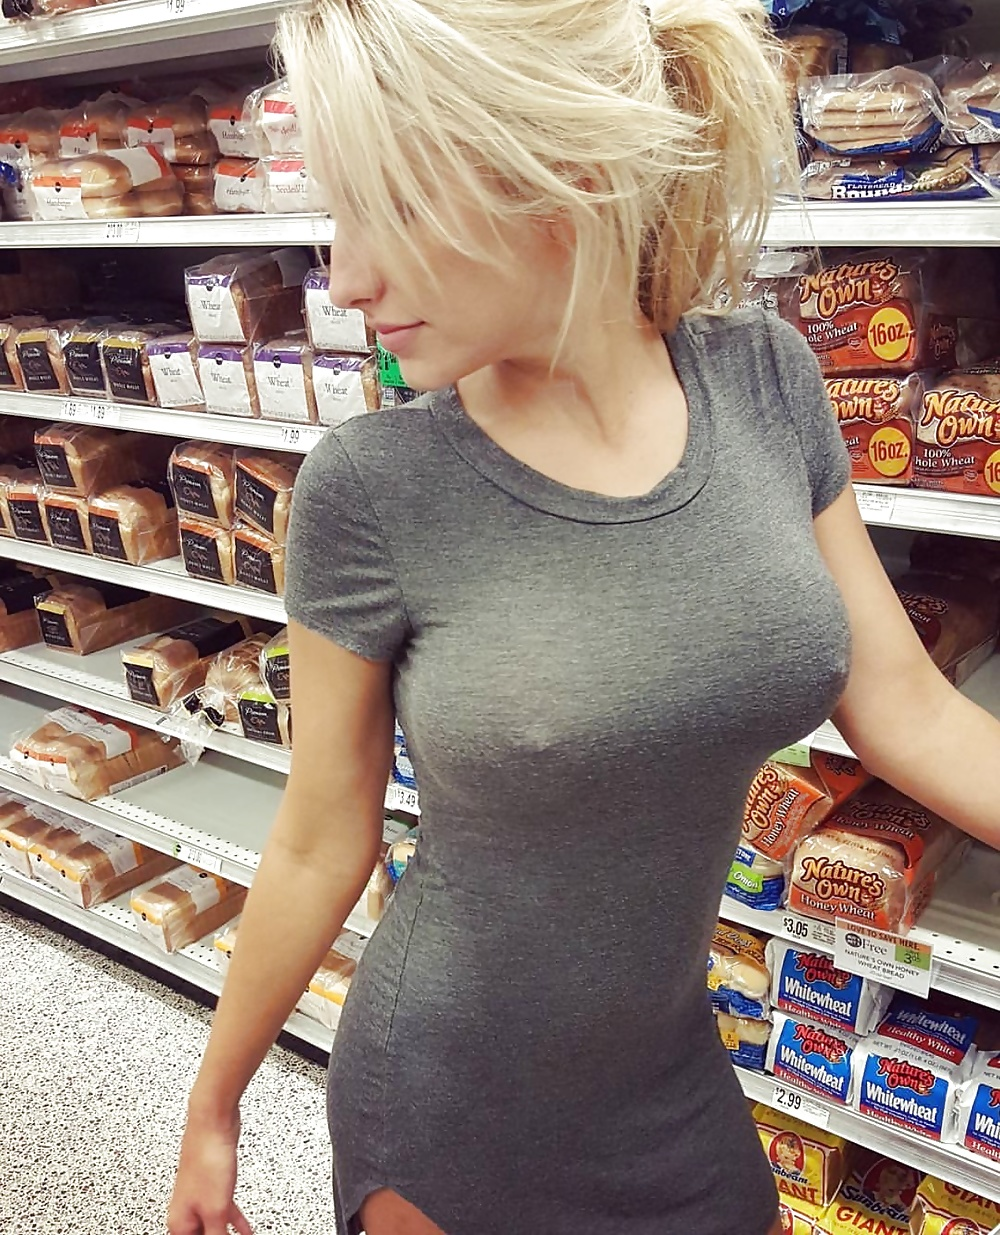 wife wearing revealing clothes in public #glasses #hefty #hotel #naked #nipples #nude #penny #pig #sandra #tits